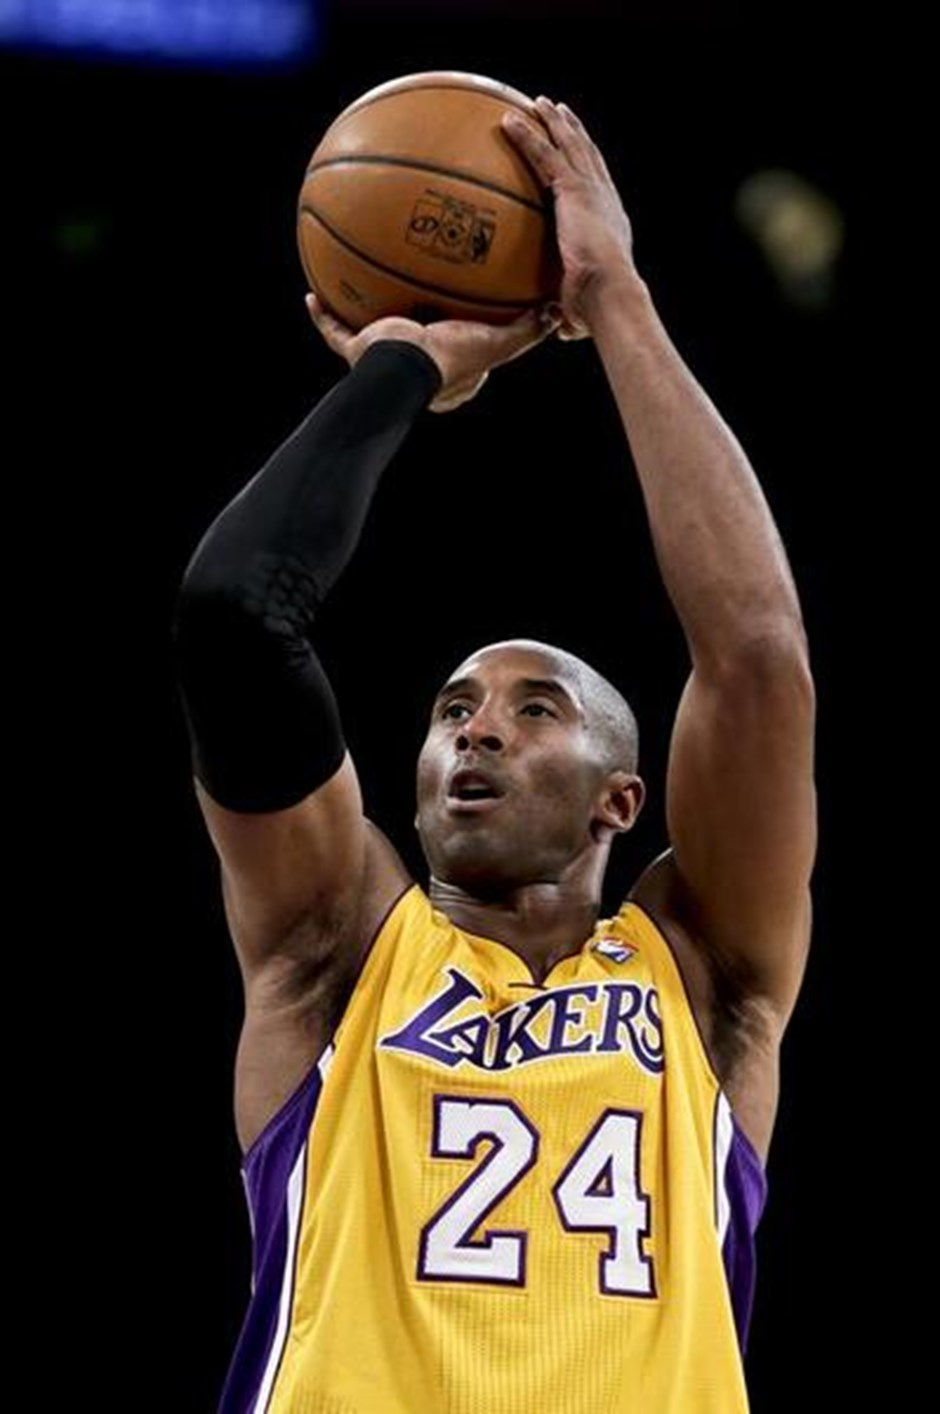 Kobe bryant naked pics, sexiest black female